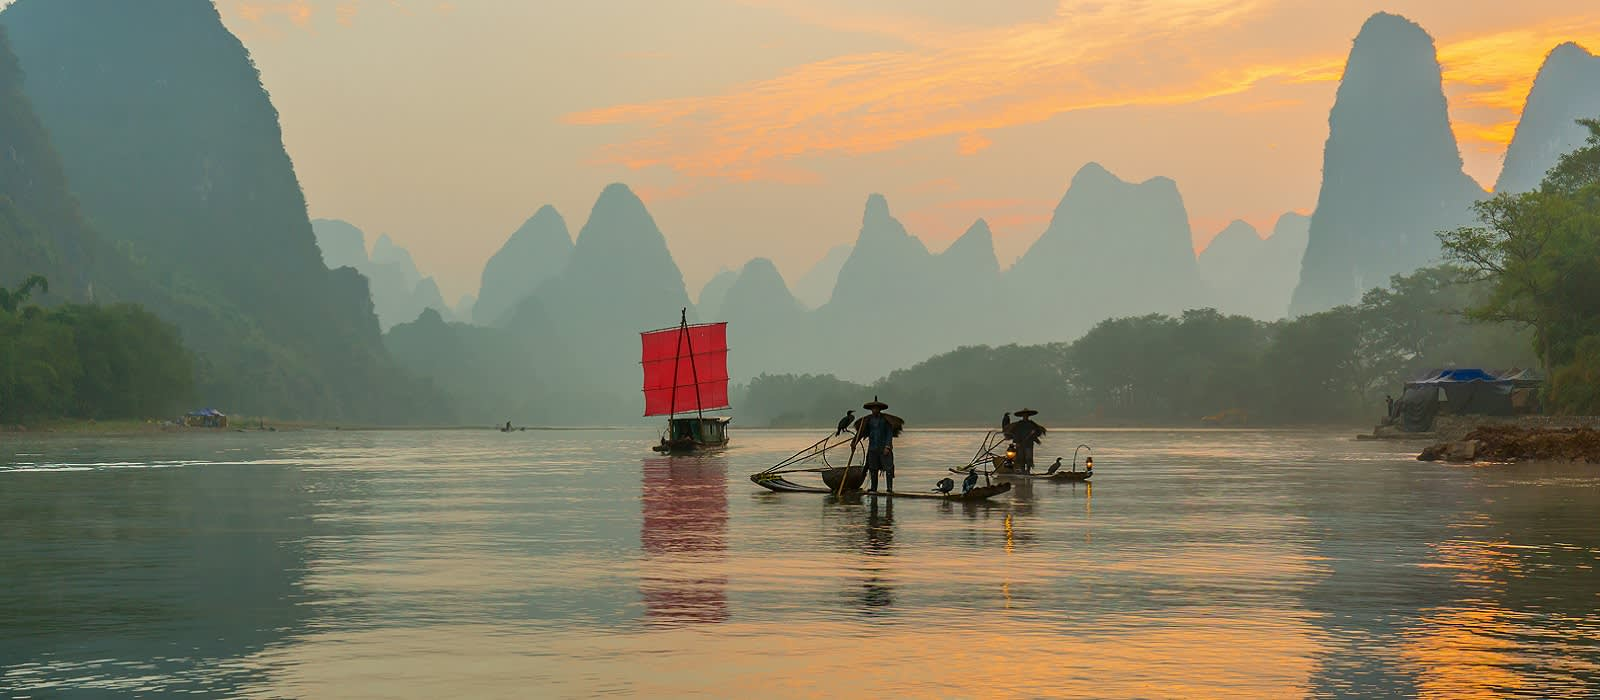 Enchanting Travels China Tours Fisherman stands on traditional bamboo boats at sunrise (boat with a red sail in the background) things to do in China